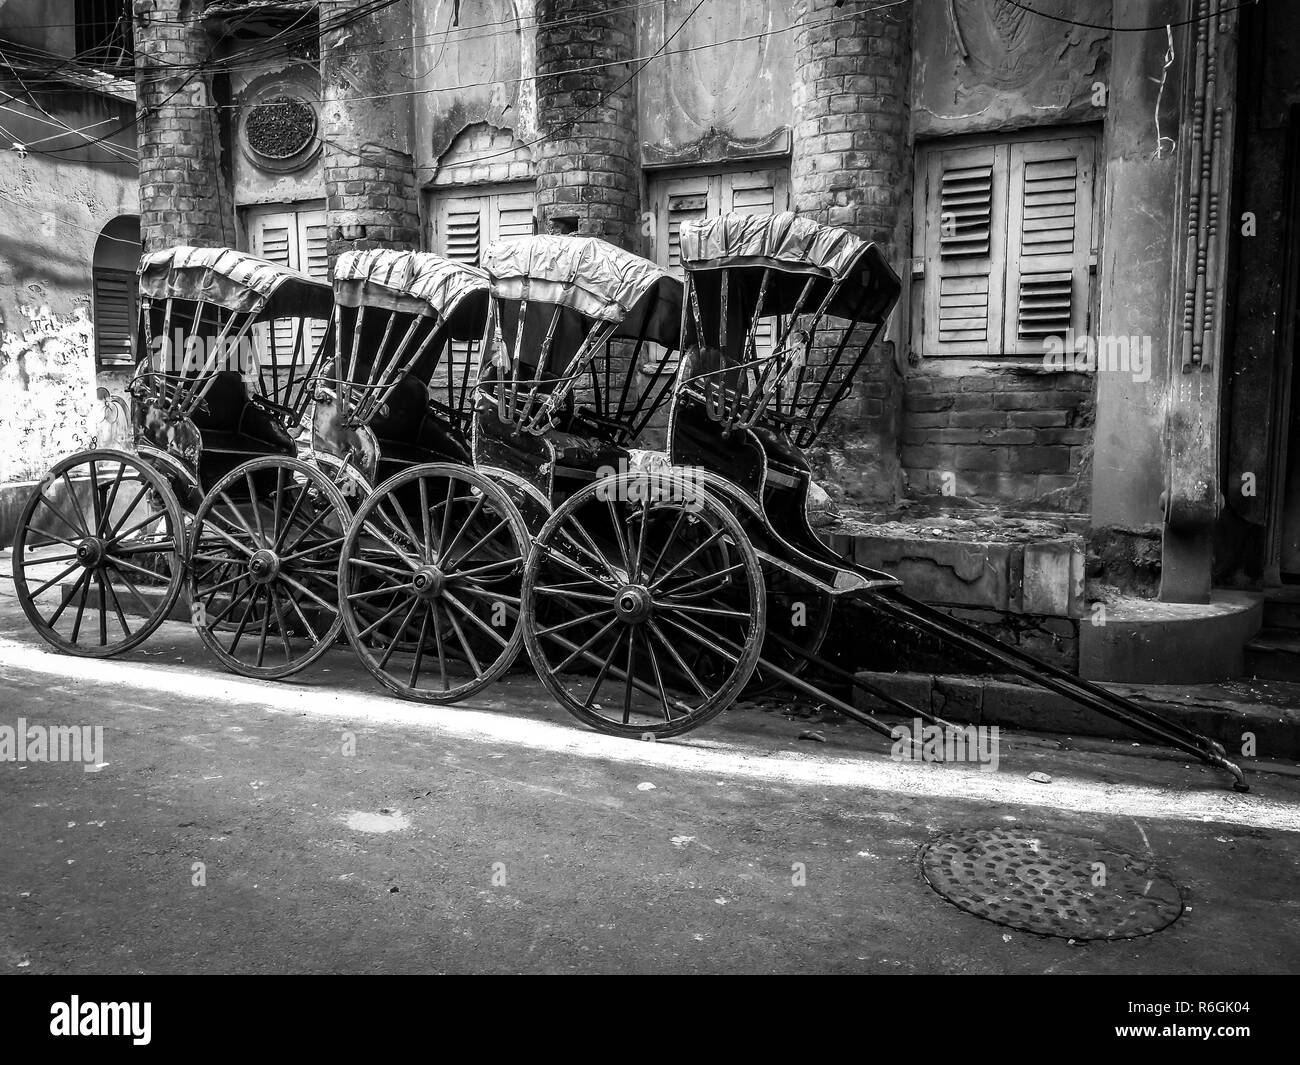 Hand pulled rickshaw on the streets of Kolkata, Calcutta, India - Stock Image